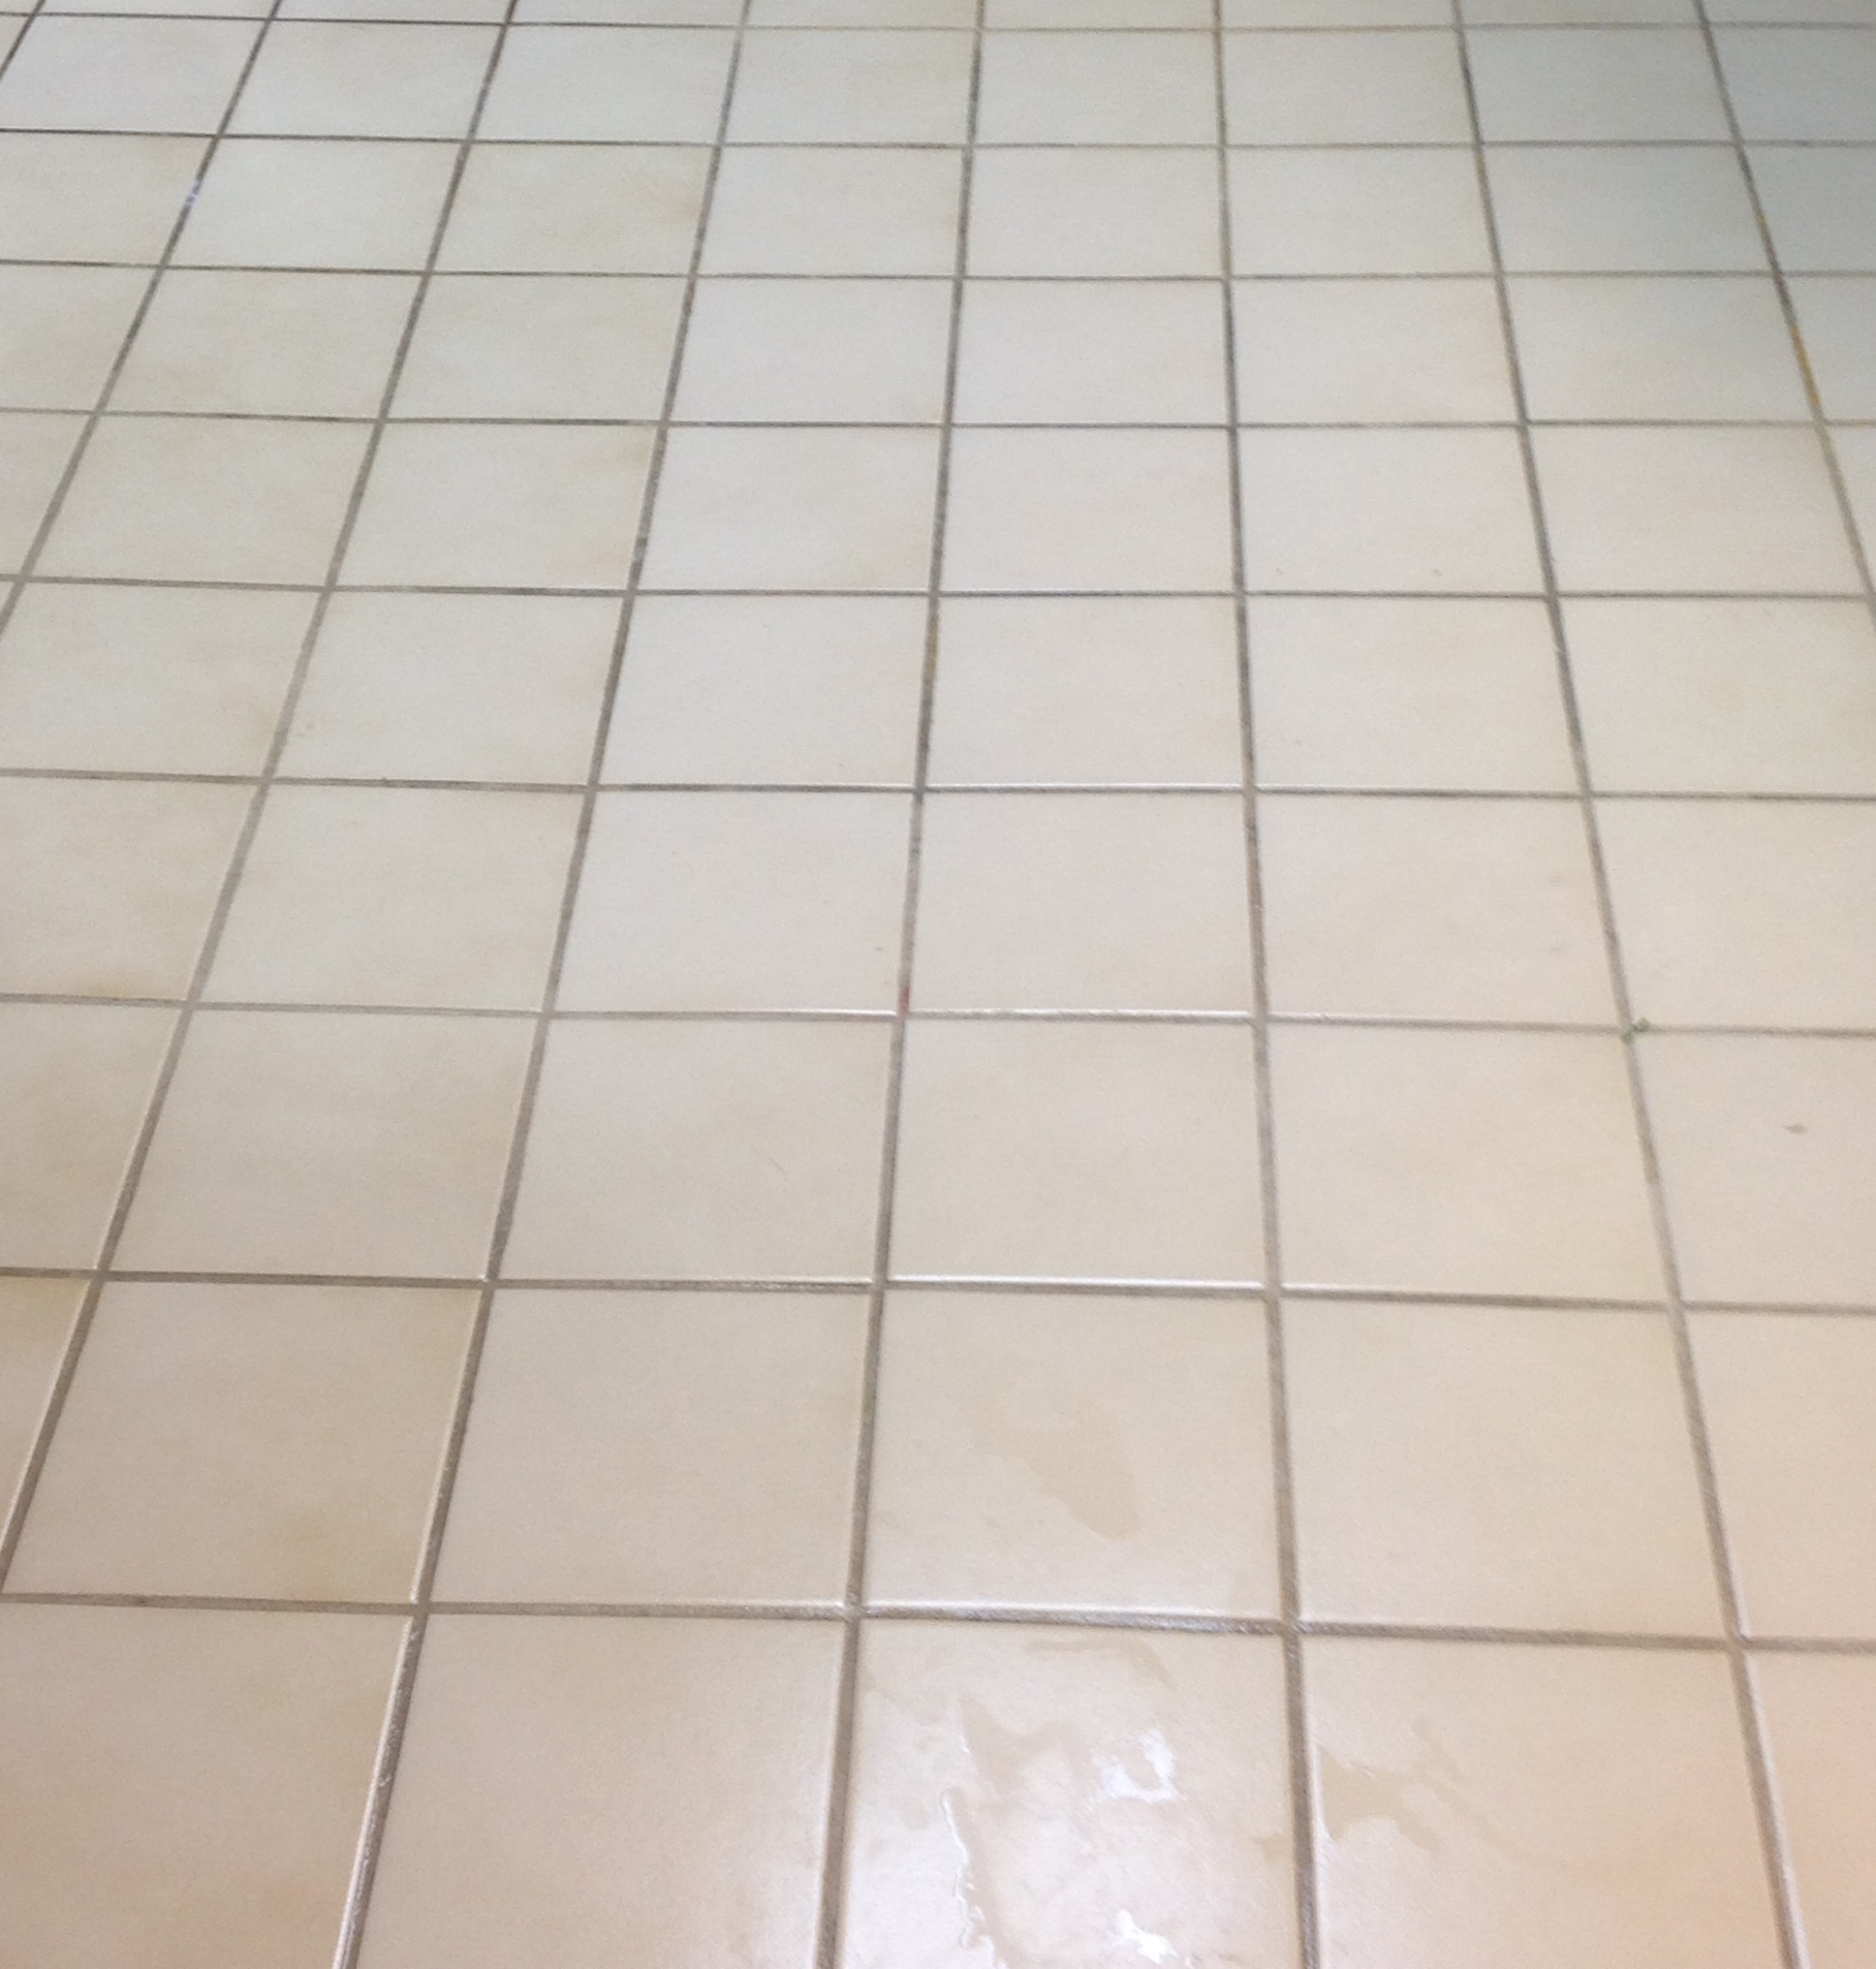 Ceramic Tile And Grout Cleaning Martins Floor Coverings Inc - What can i use to clean ceramic tile floors